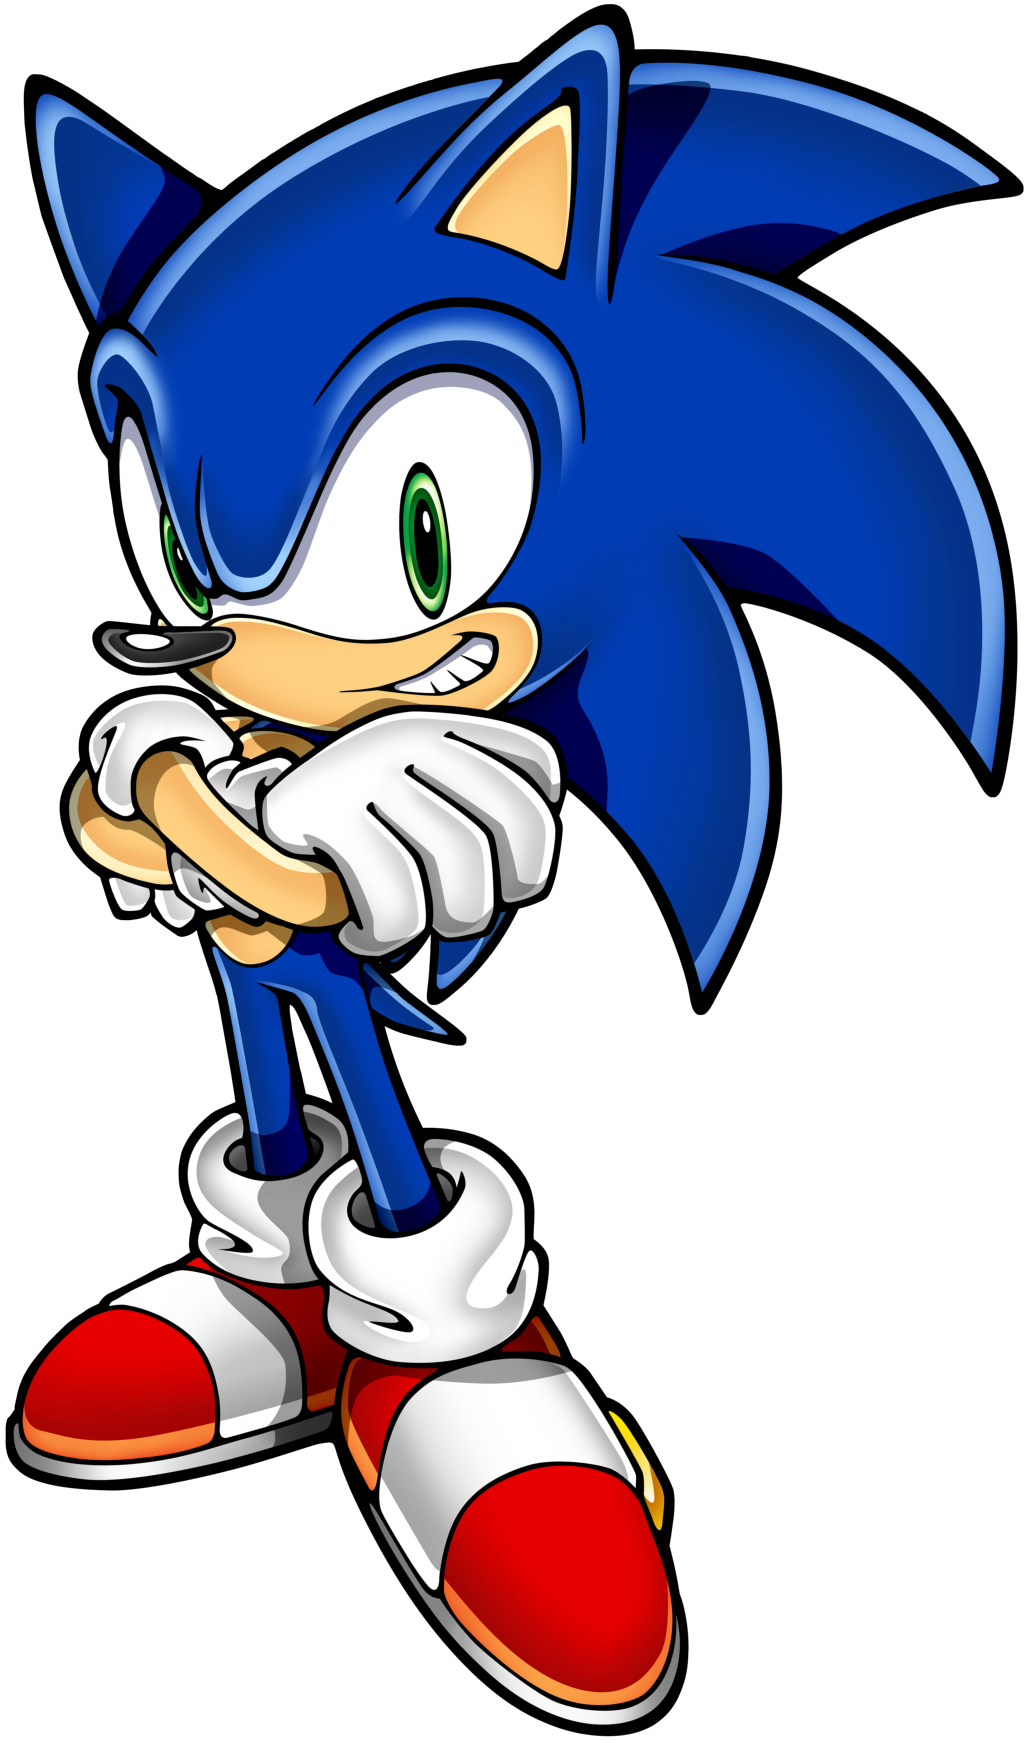 image sonic the hedgehog rush adventure png nintendo fandom